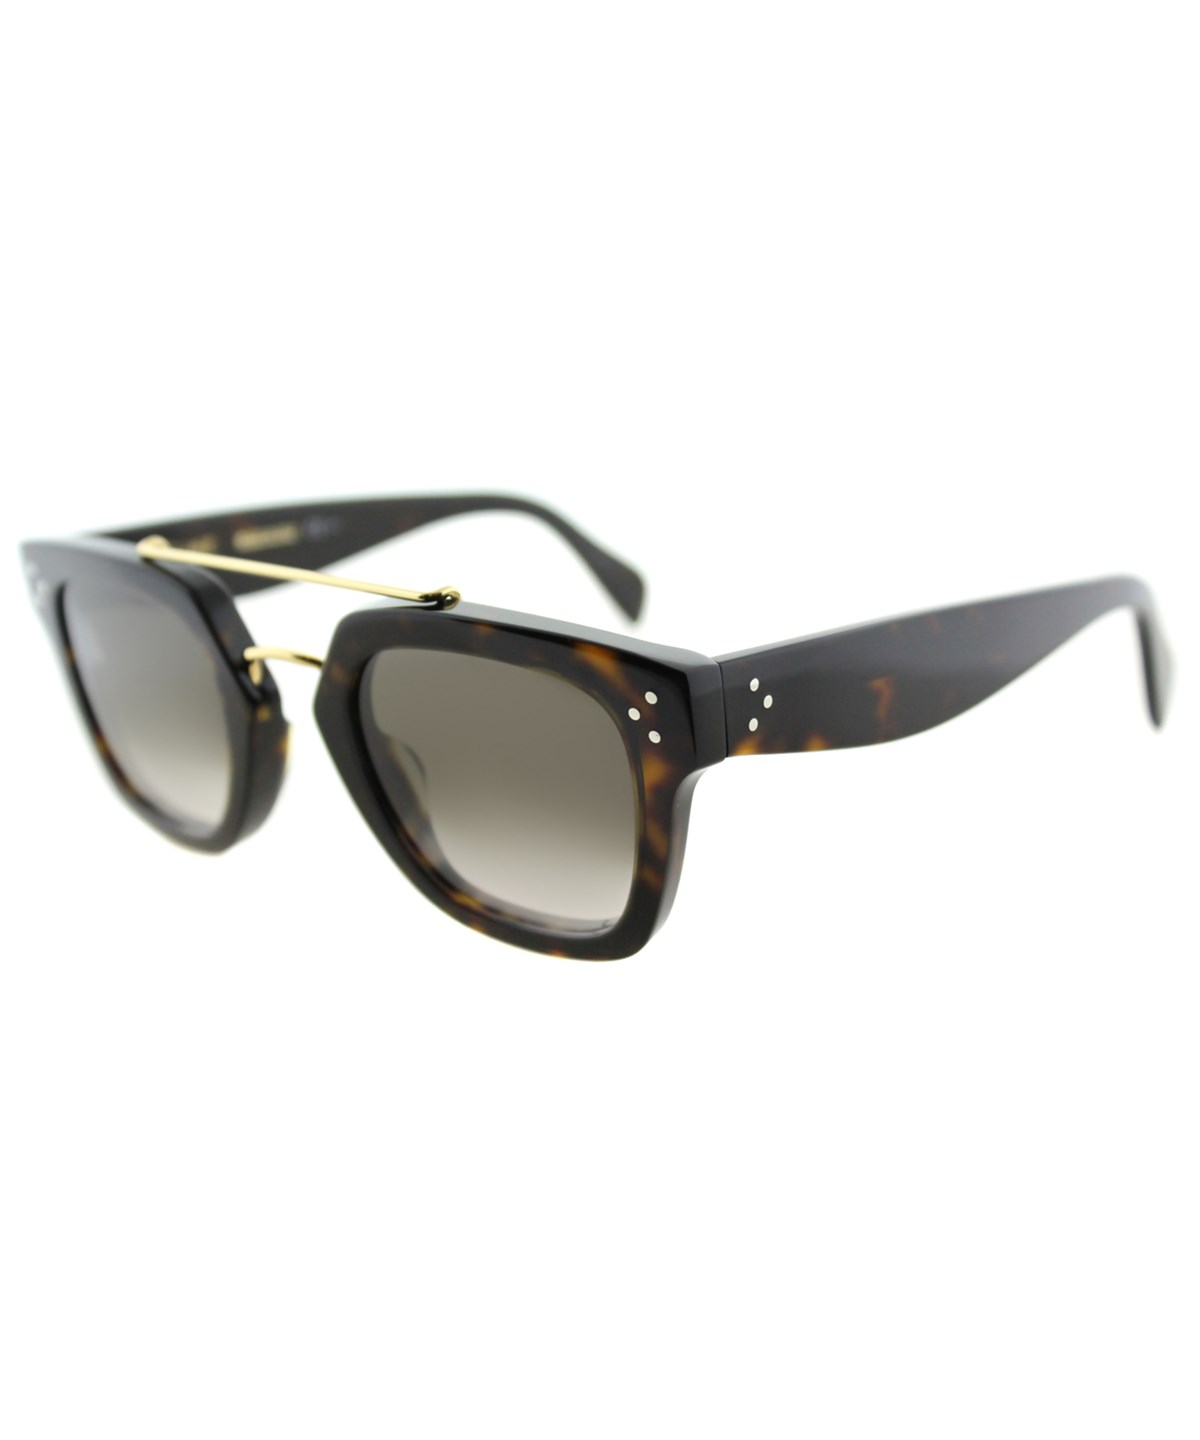 be84cd5e09e CELINE SQUARE PLASTIC SUNGLASSES